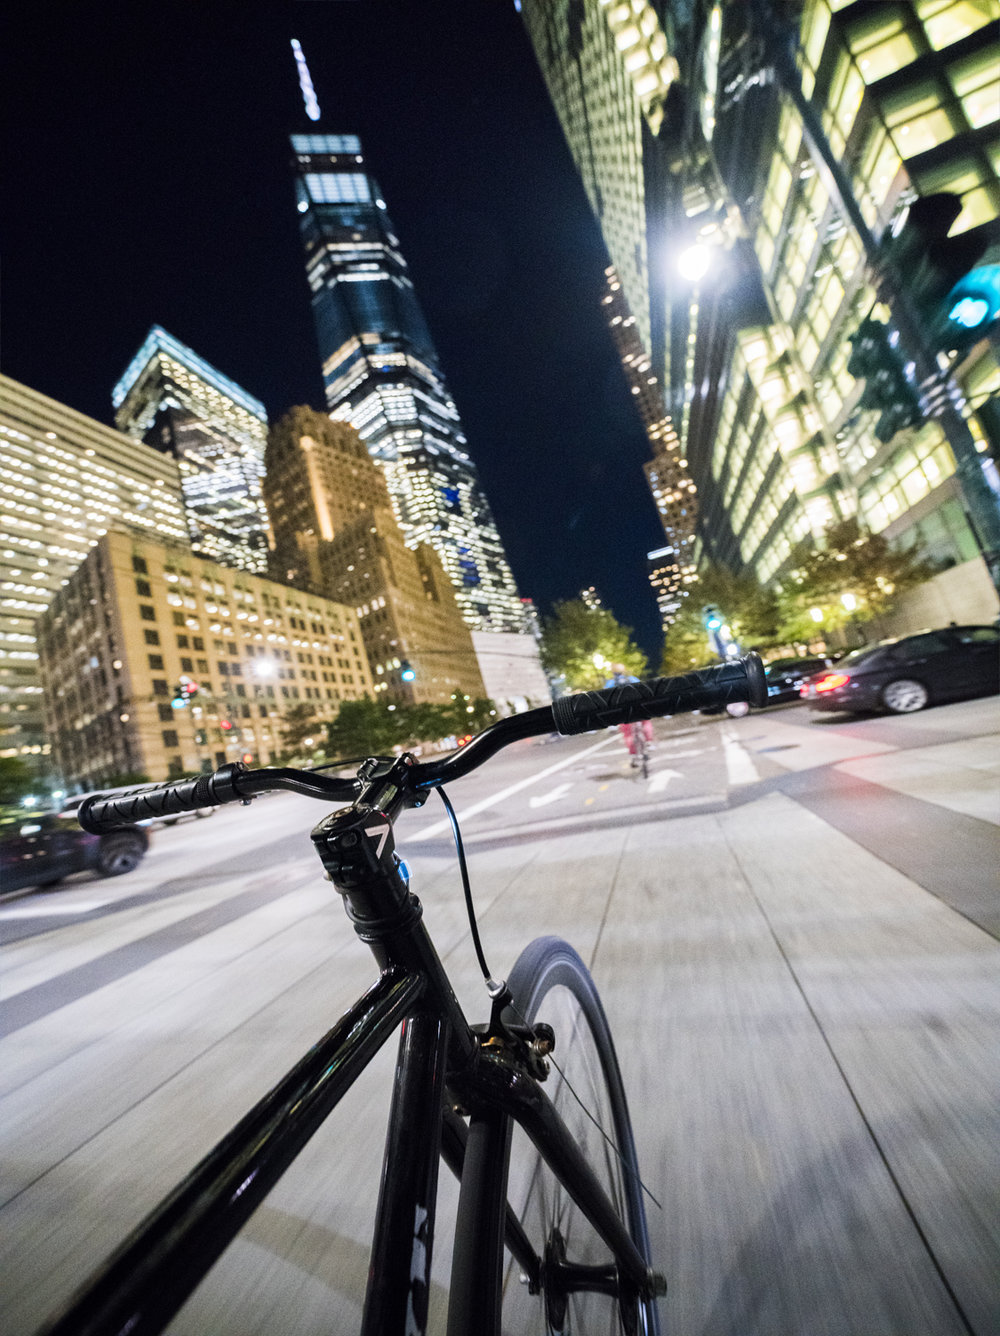 Sony A7RII, Sony 12-24mm f/4 (iso12,800, f/4, 1/50s)  I shot this photo while riding down the bike lane towards the World Trade Center.  I did this one with no hands and an extremely high iso.  Four days after I shot this photo, a person drove his truck onto the bike path and killed eight people right in this very same intersection I am crossing on my bike.  I seem to keep just missing these insane terrorist attacks.